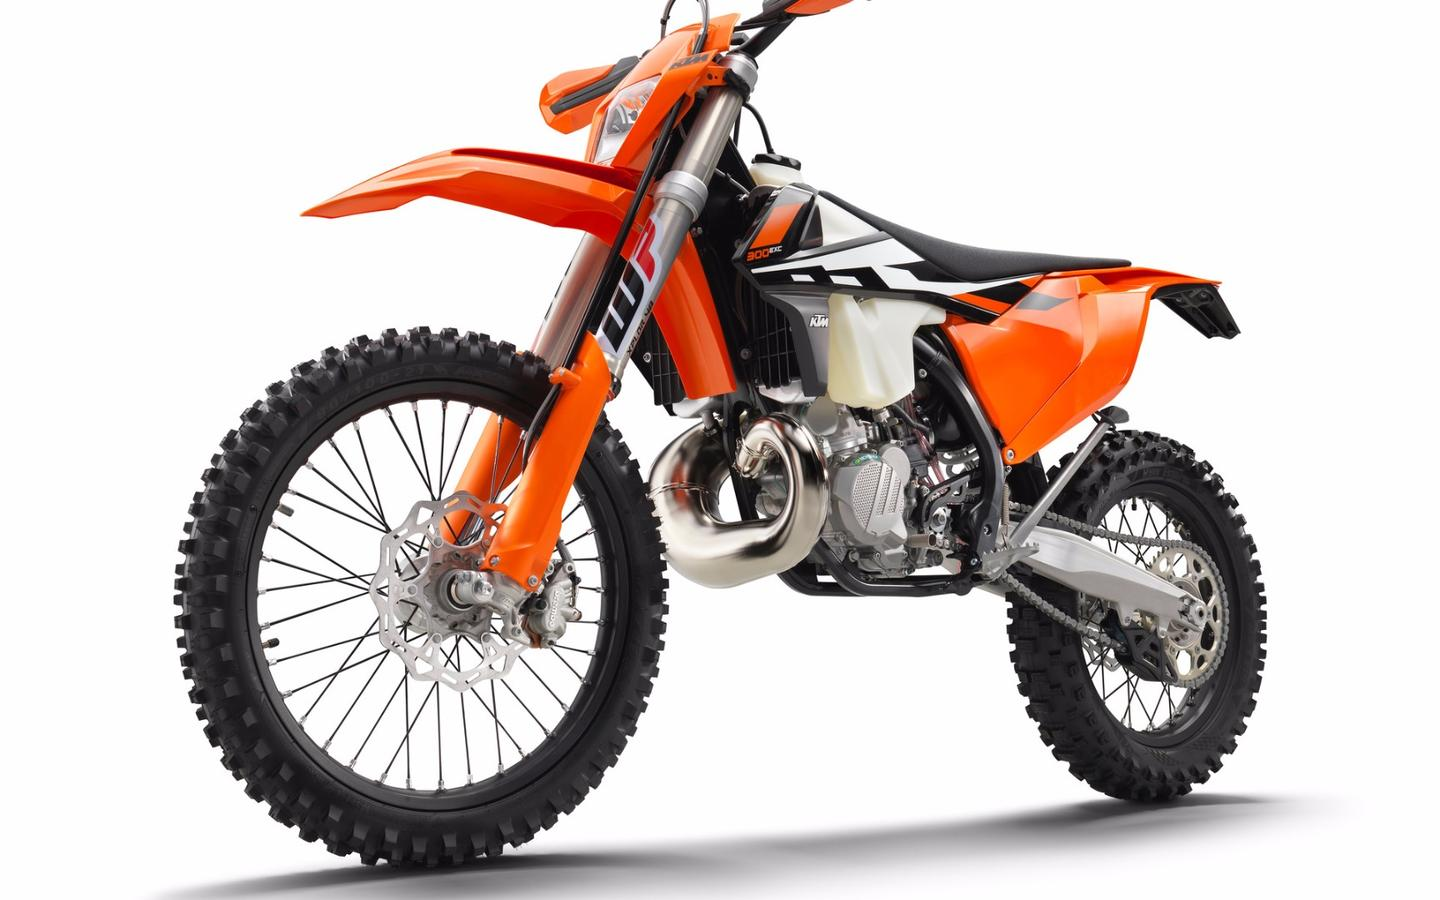 Current KTM two-strokes, like the 300 EXC, rely on good old tech - Reed valves and Mikuni carbs - that will find it very hard to survive under stricter Euro 4 emissions rules